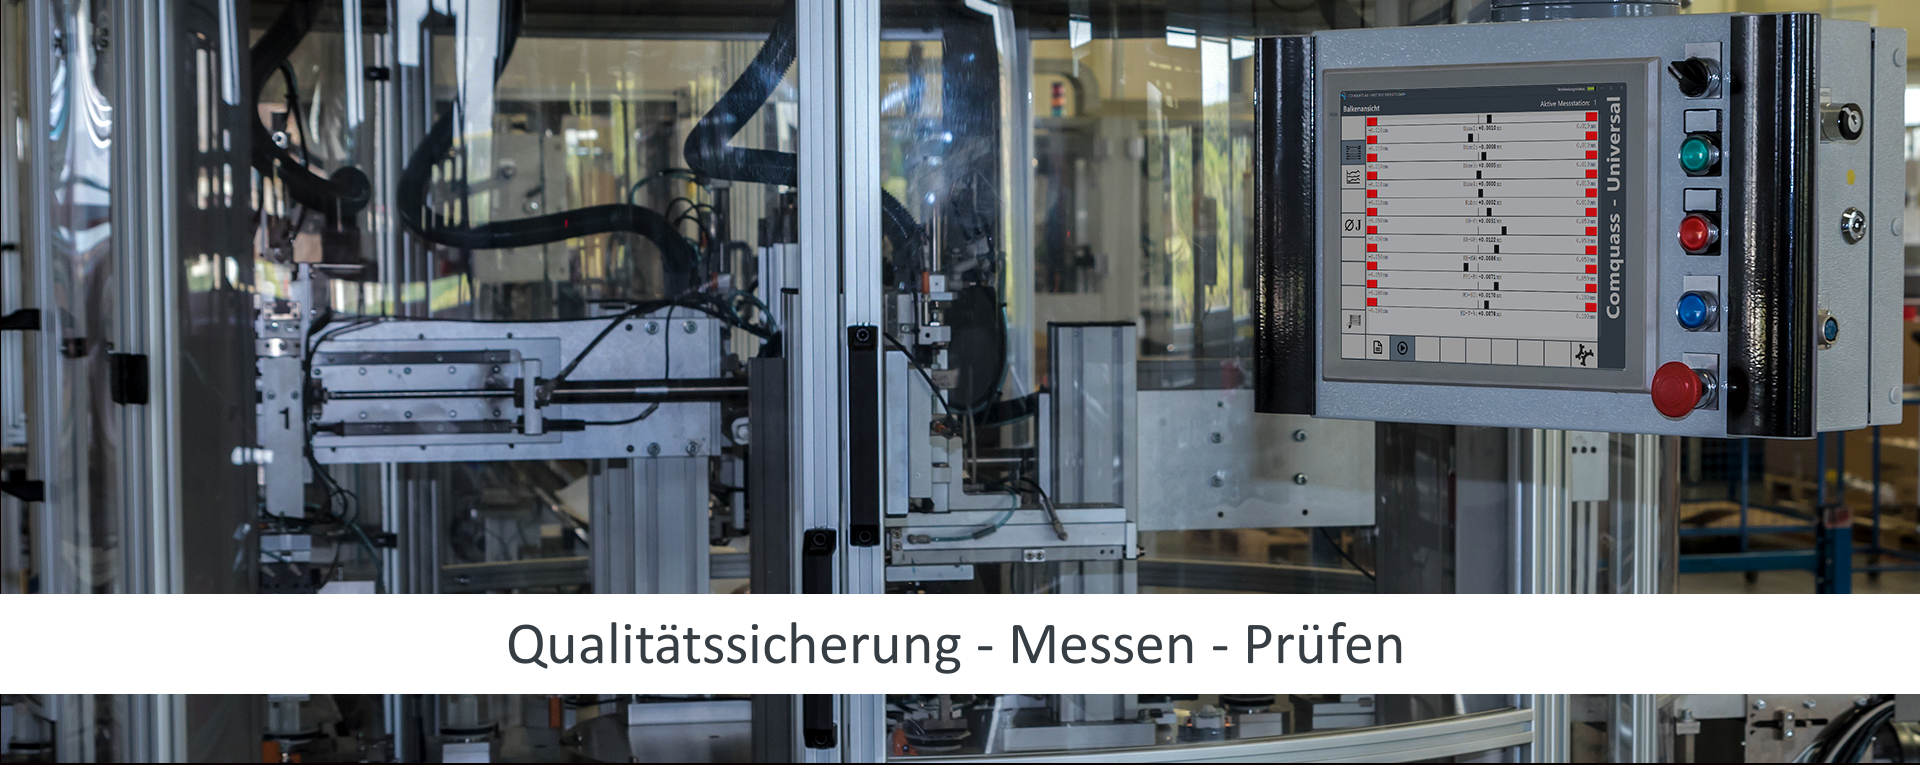 Messen und Prüfen zur Qualitätssicherung, Lösungen zur Messdatenerfassung mittels Interface EBIS IoT Devices und Messdatenanalyse mit Messsoftware Comquass.